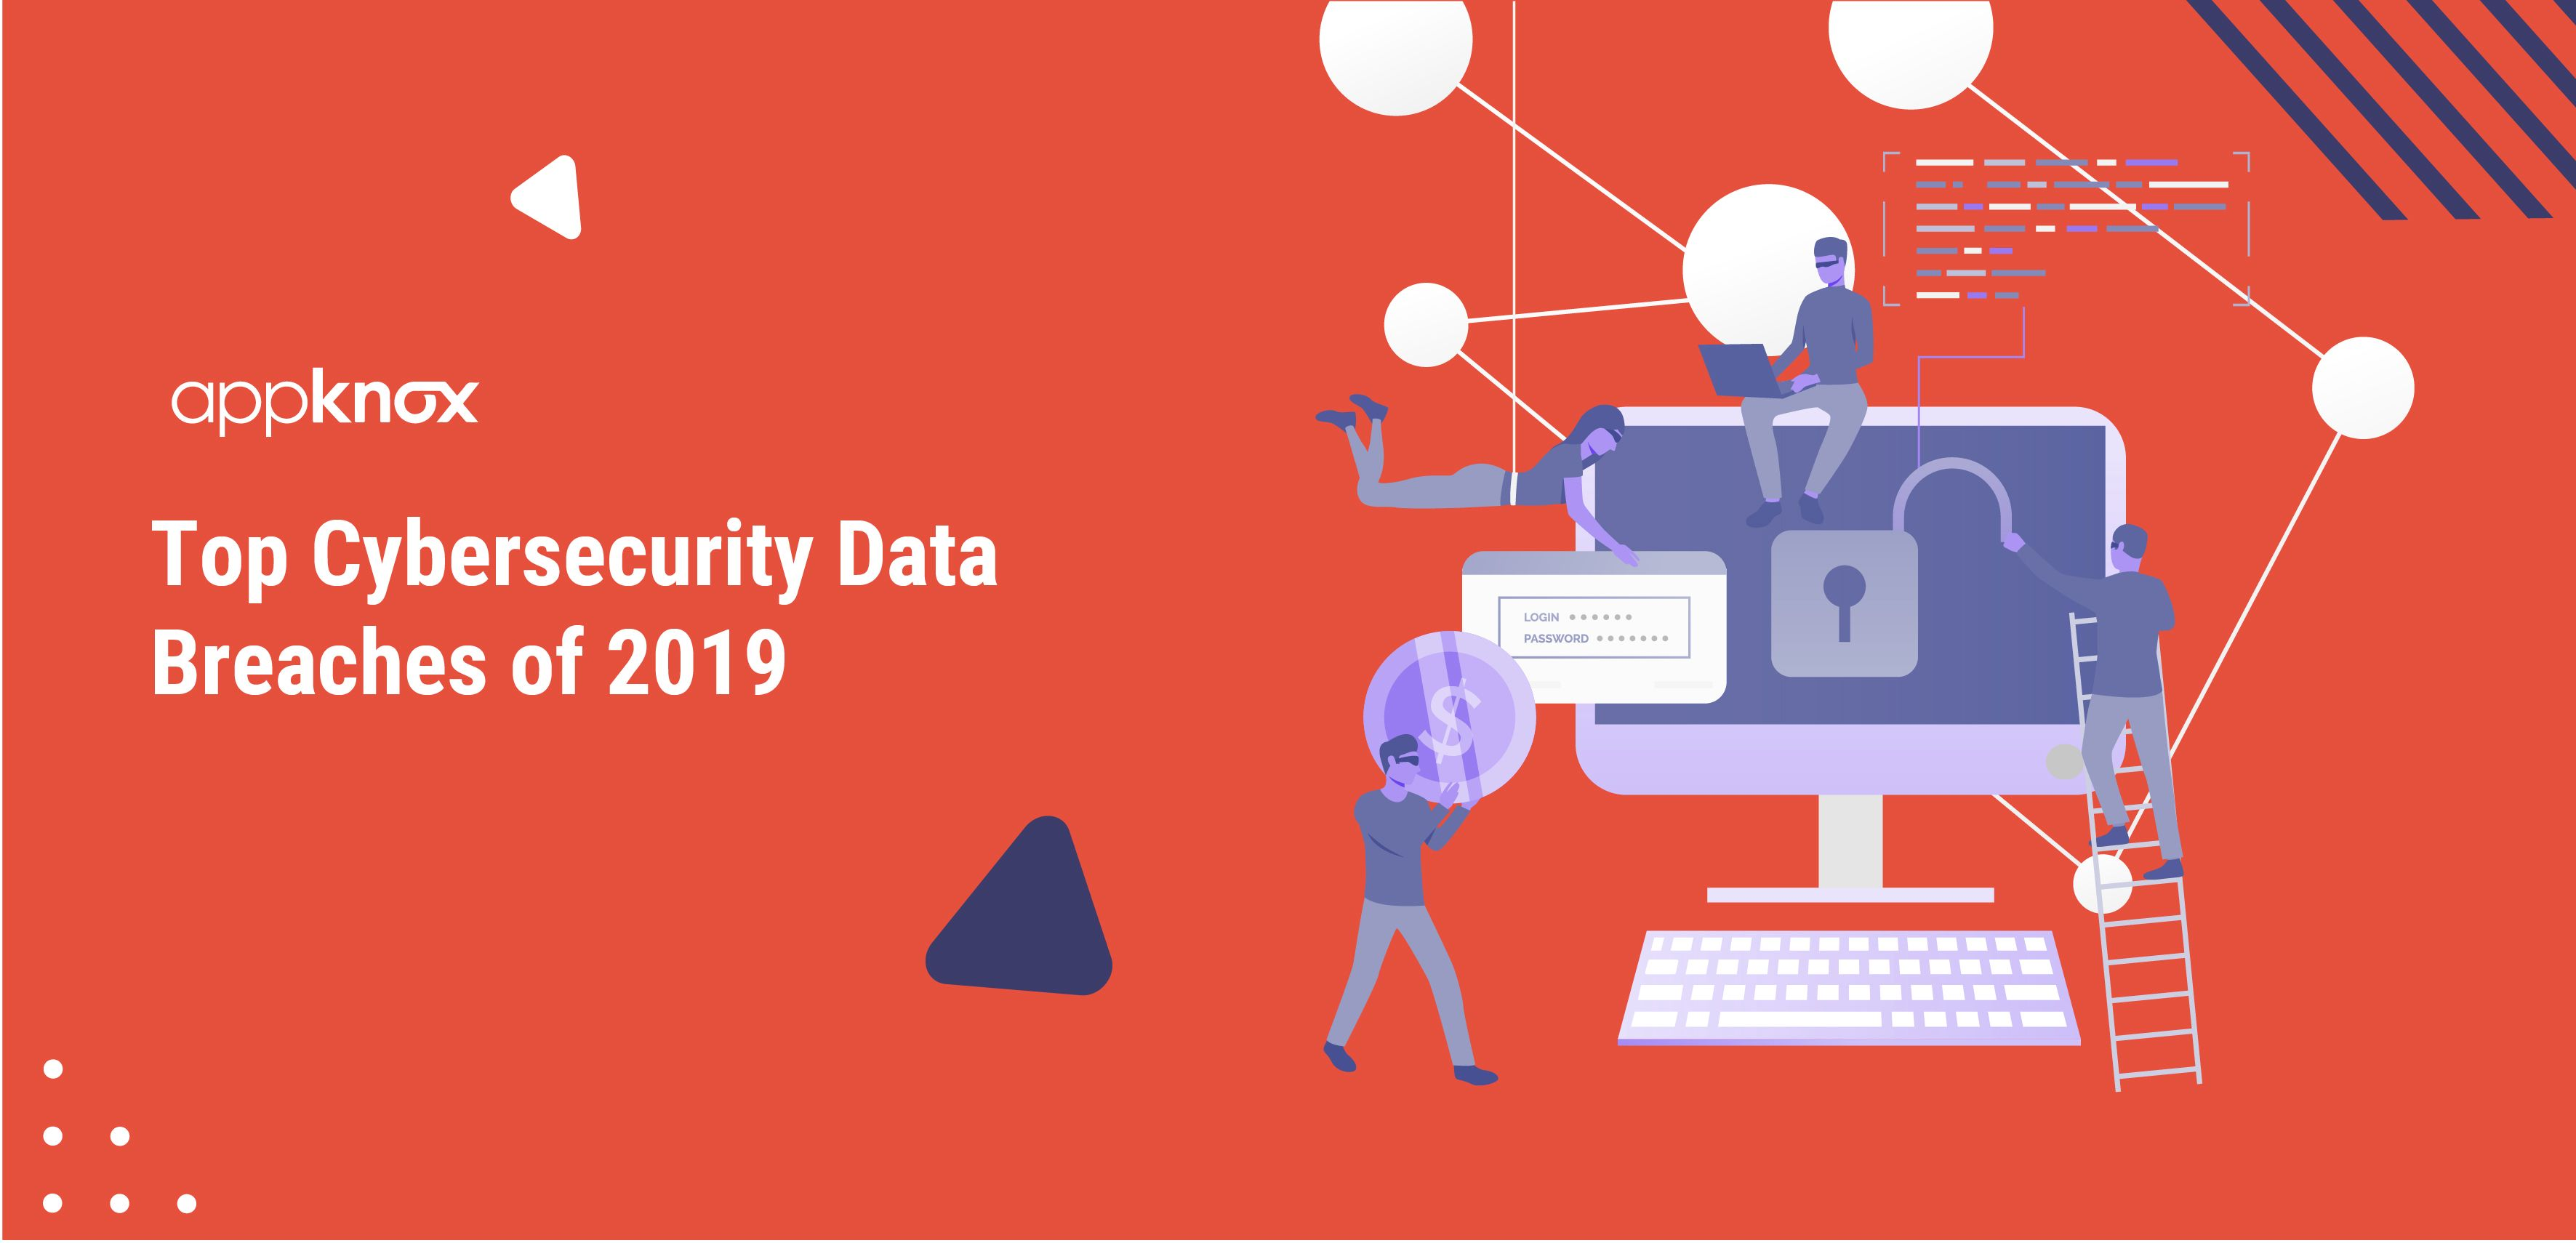 Top Cybersecurity Data Breaches of 2019